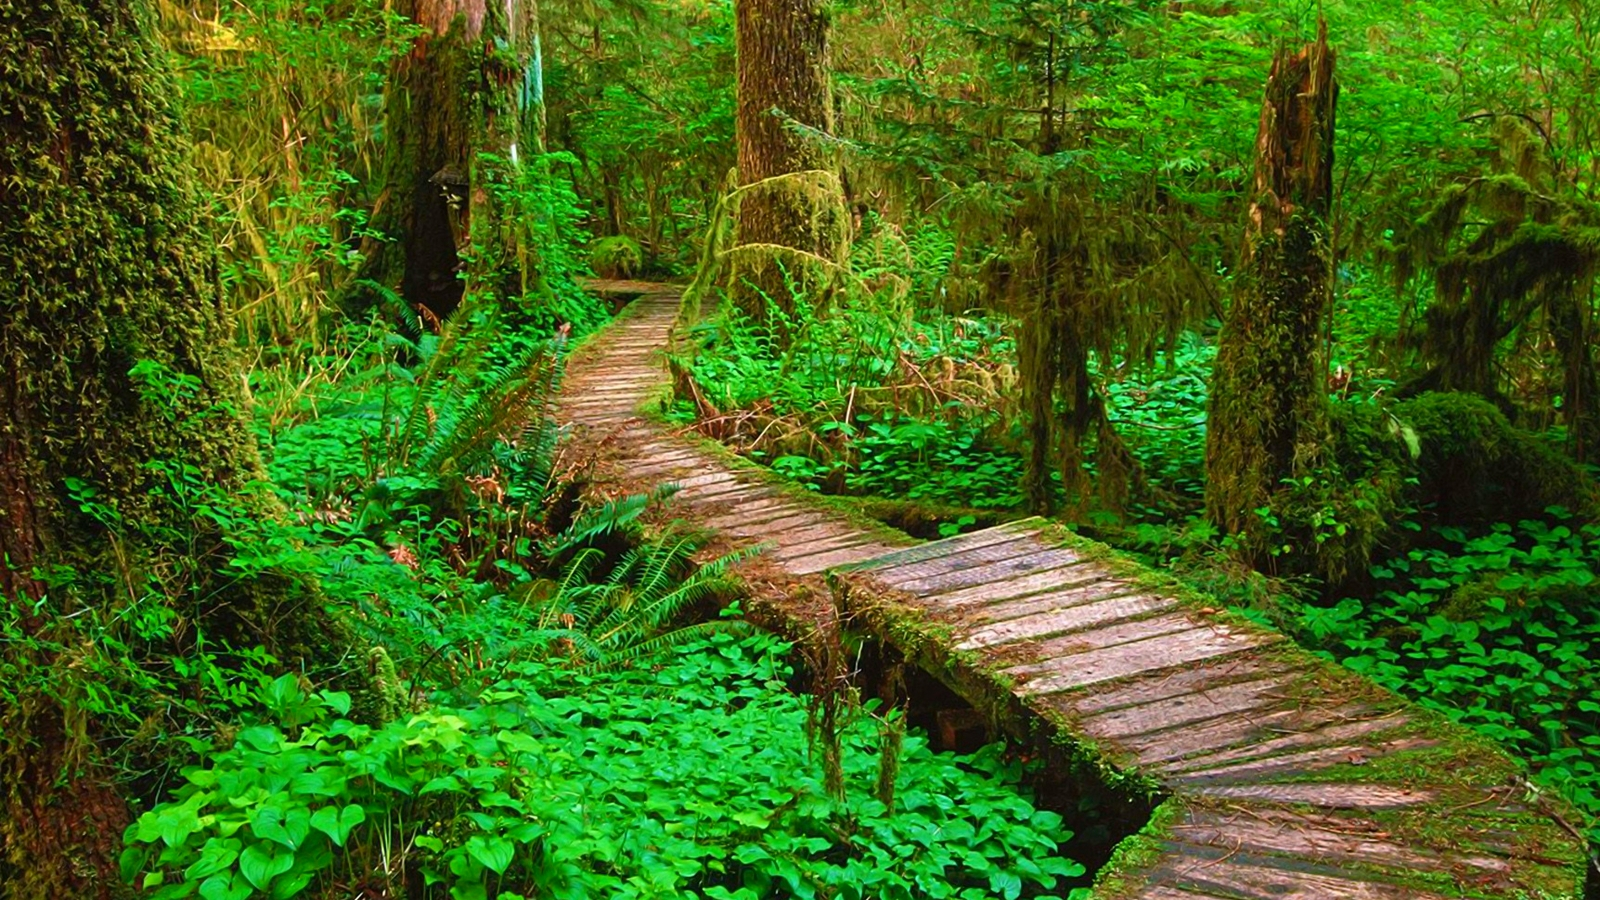 22 Wood walkway forest trees trail beautiful HD Wallpaper 1839 :: Forest Path Hd Wallpapers